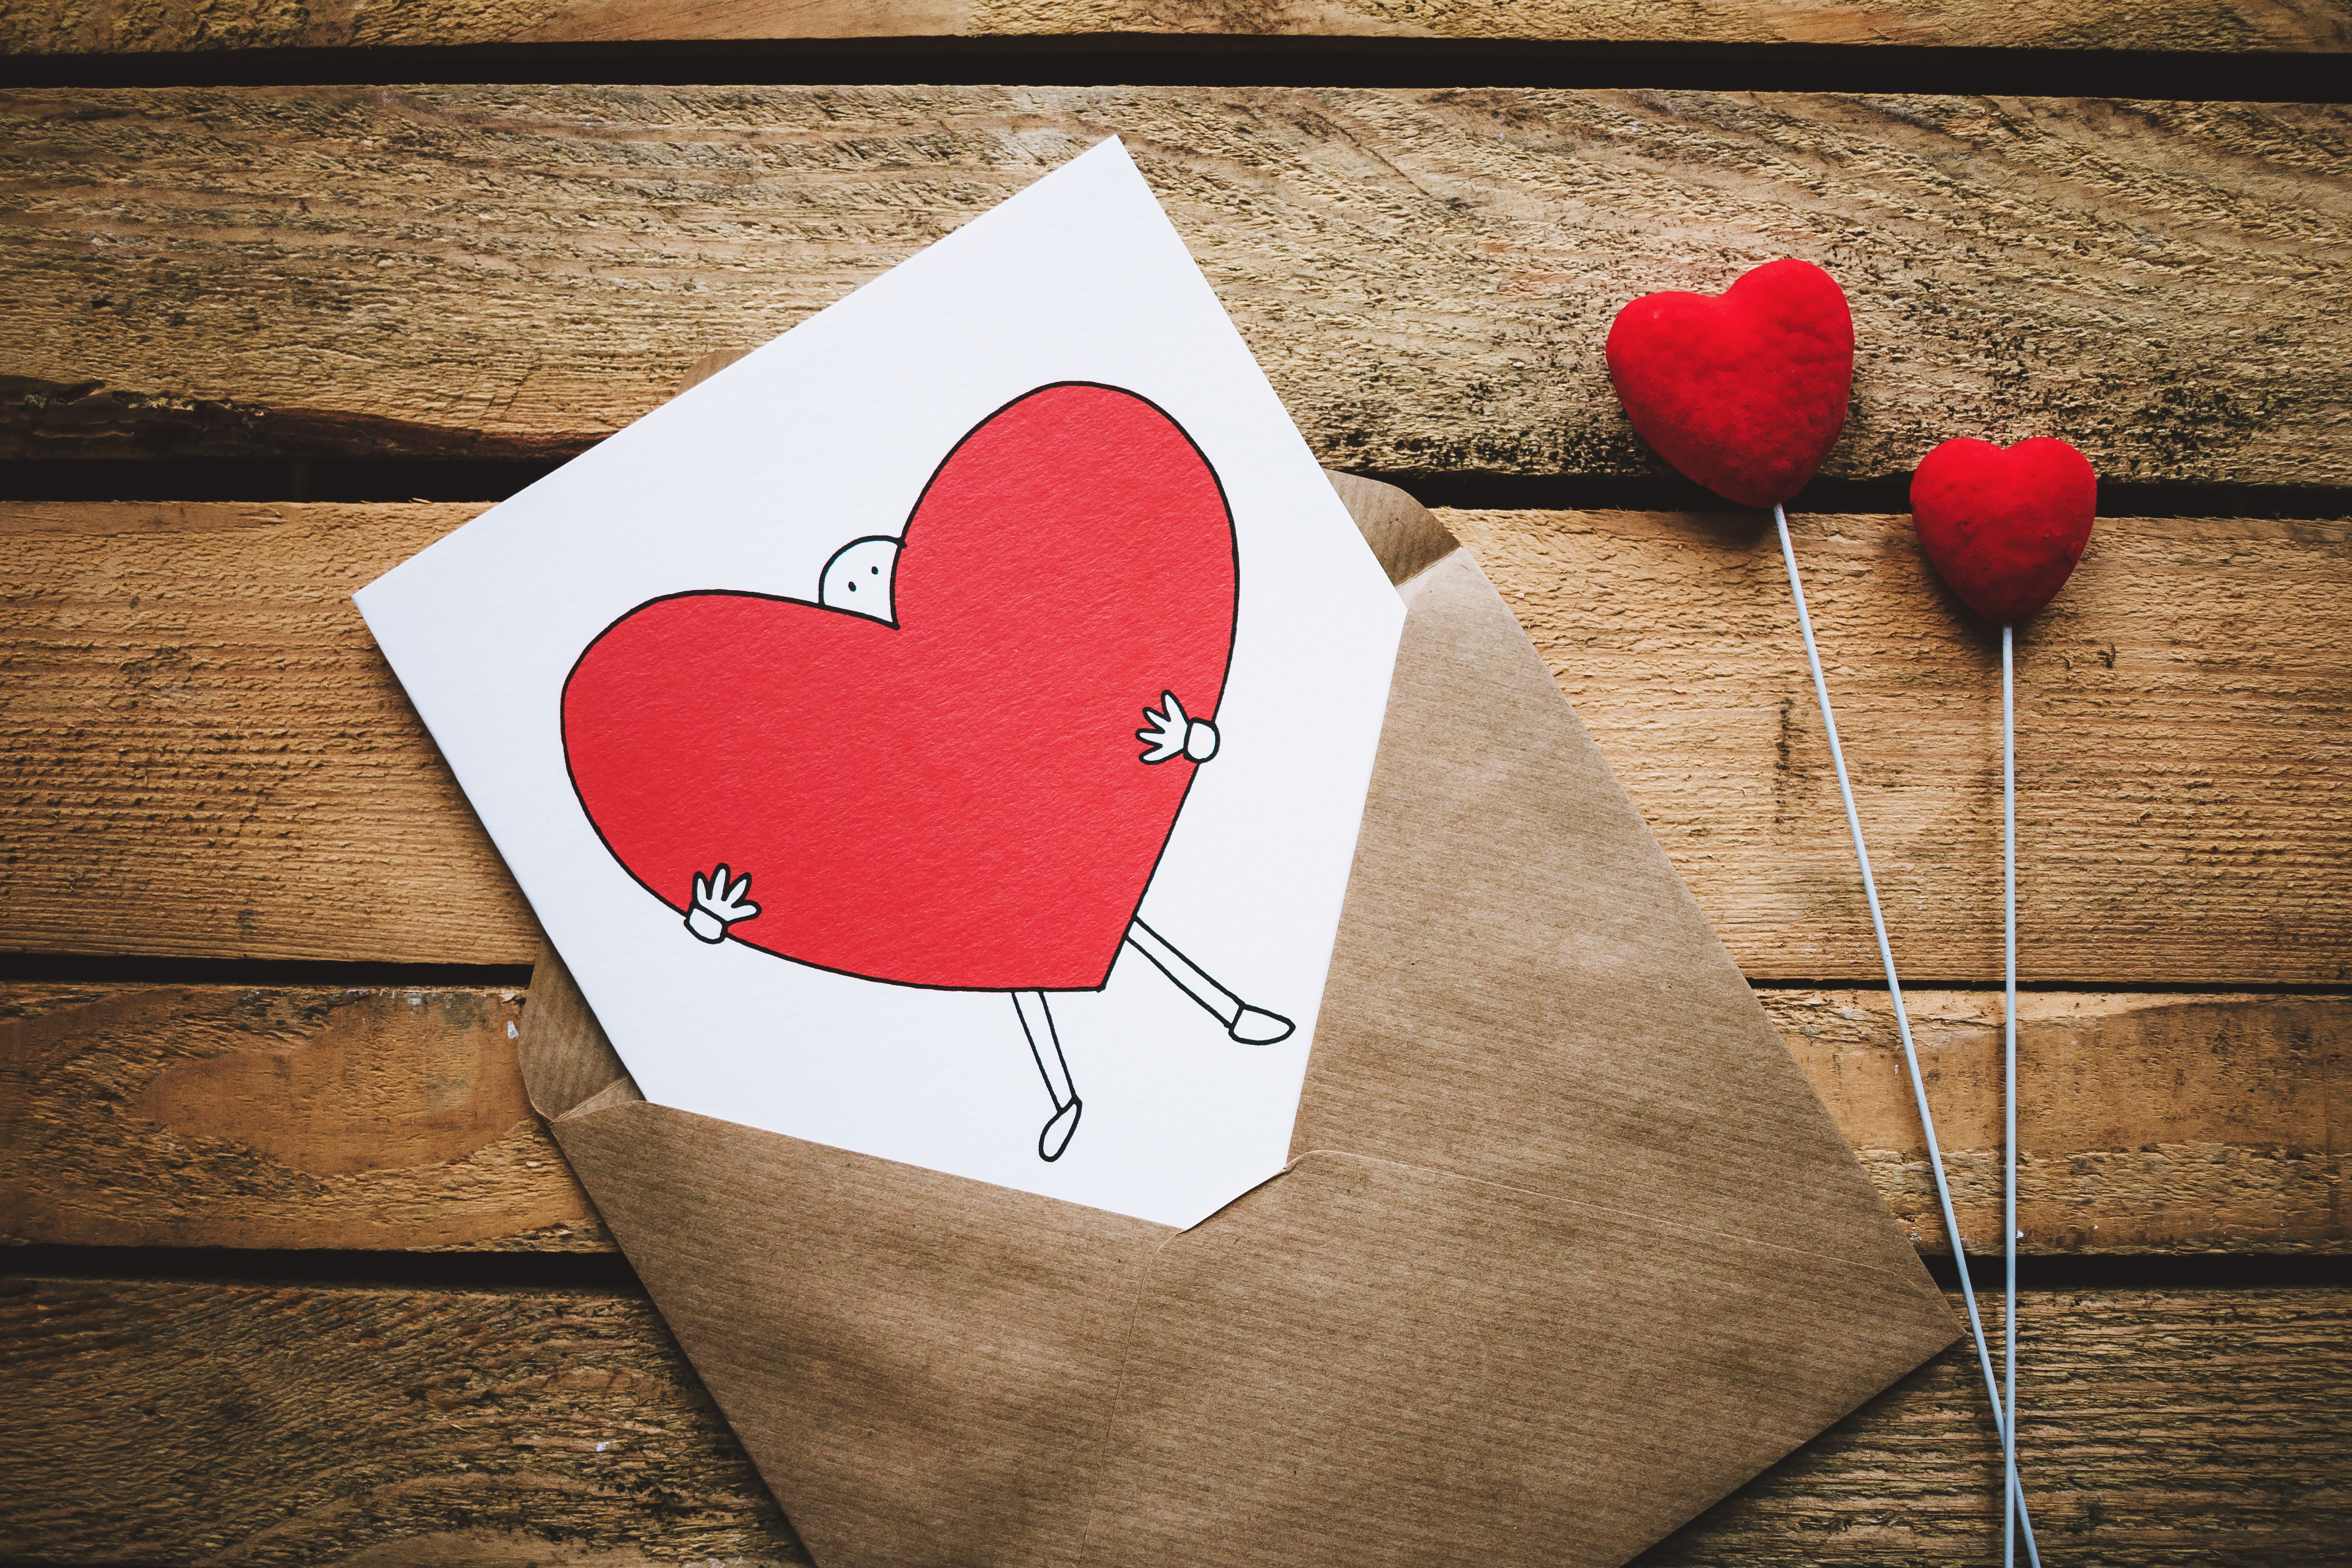 white-black-and-red-person-carrying-heart-illustration-in-867462.jpg